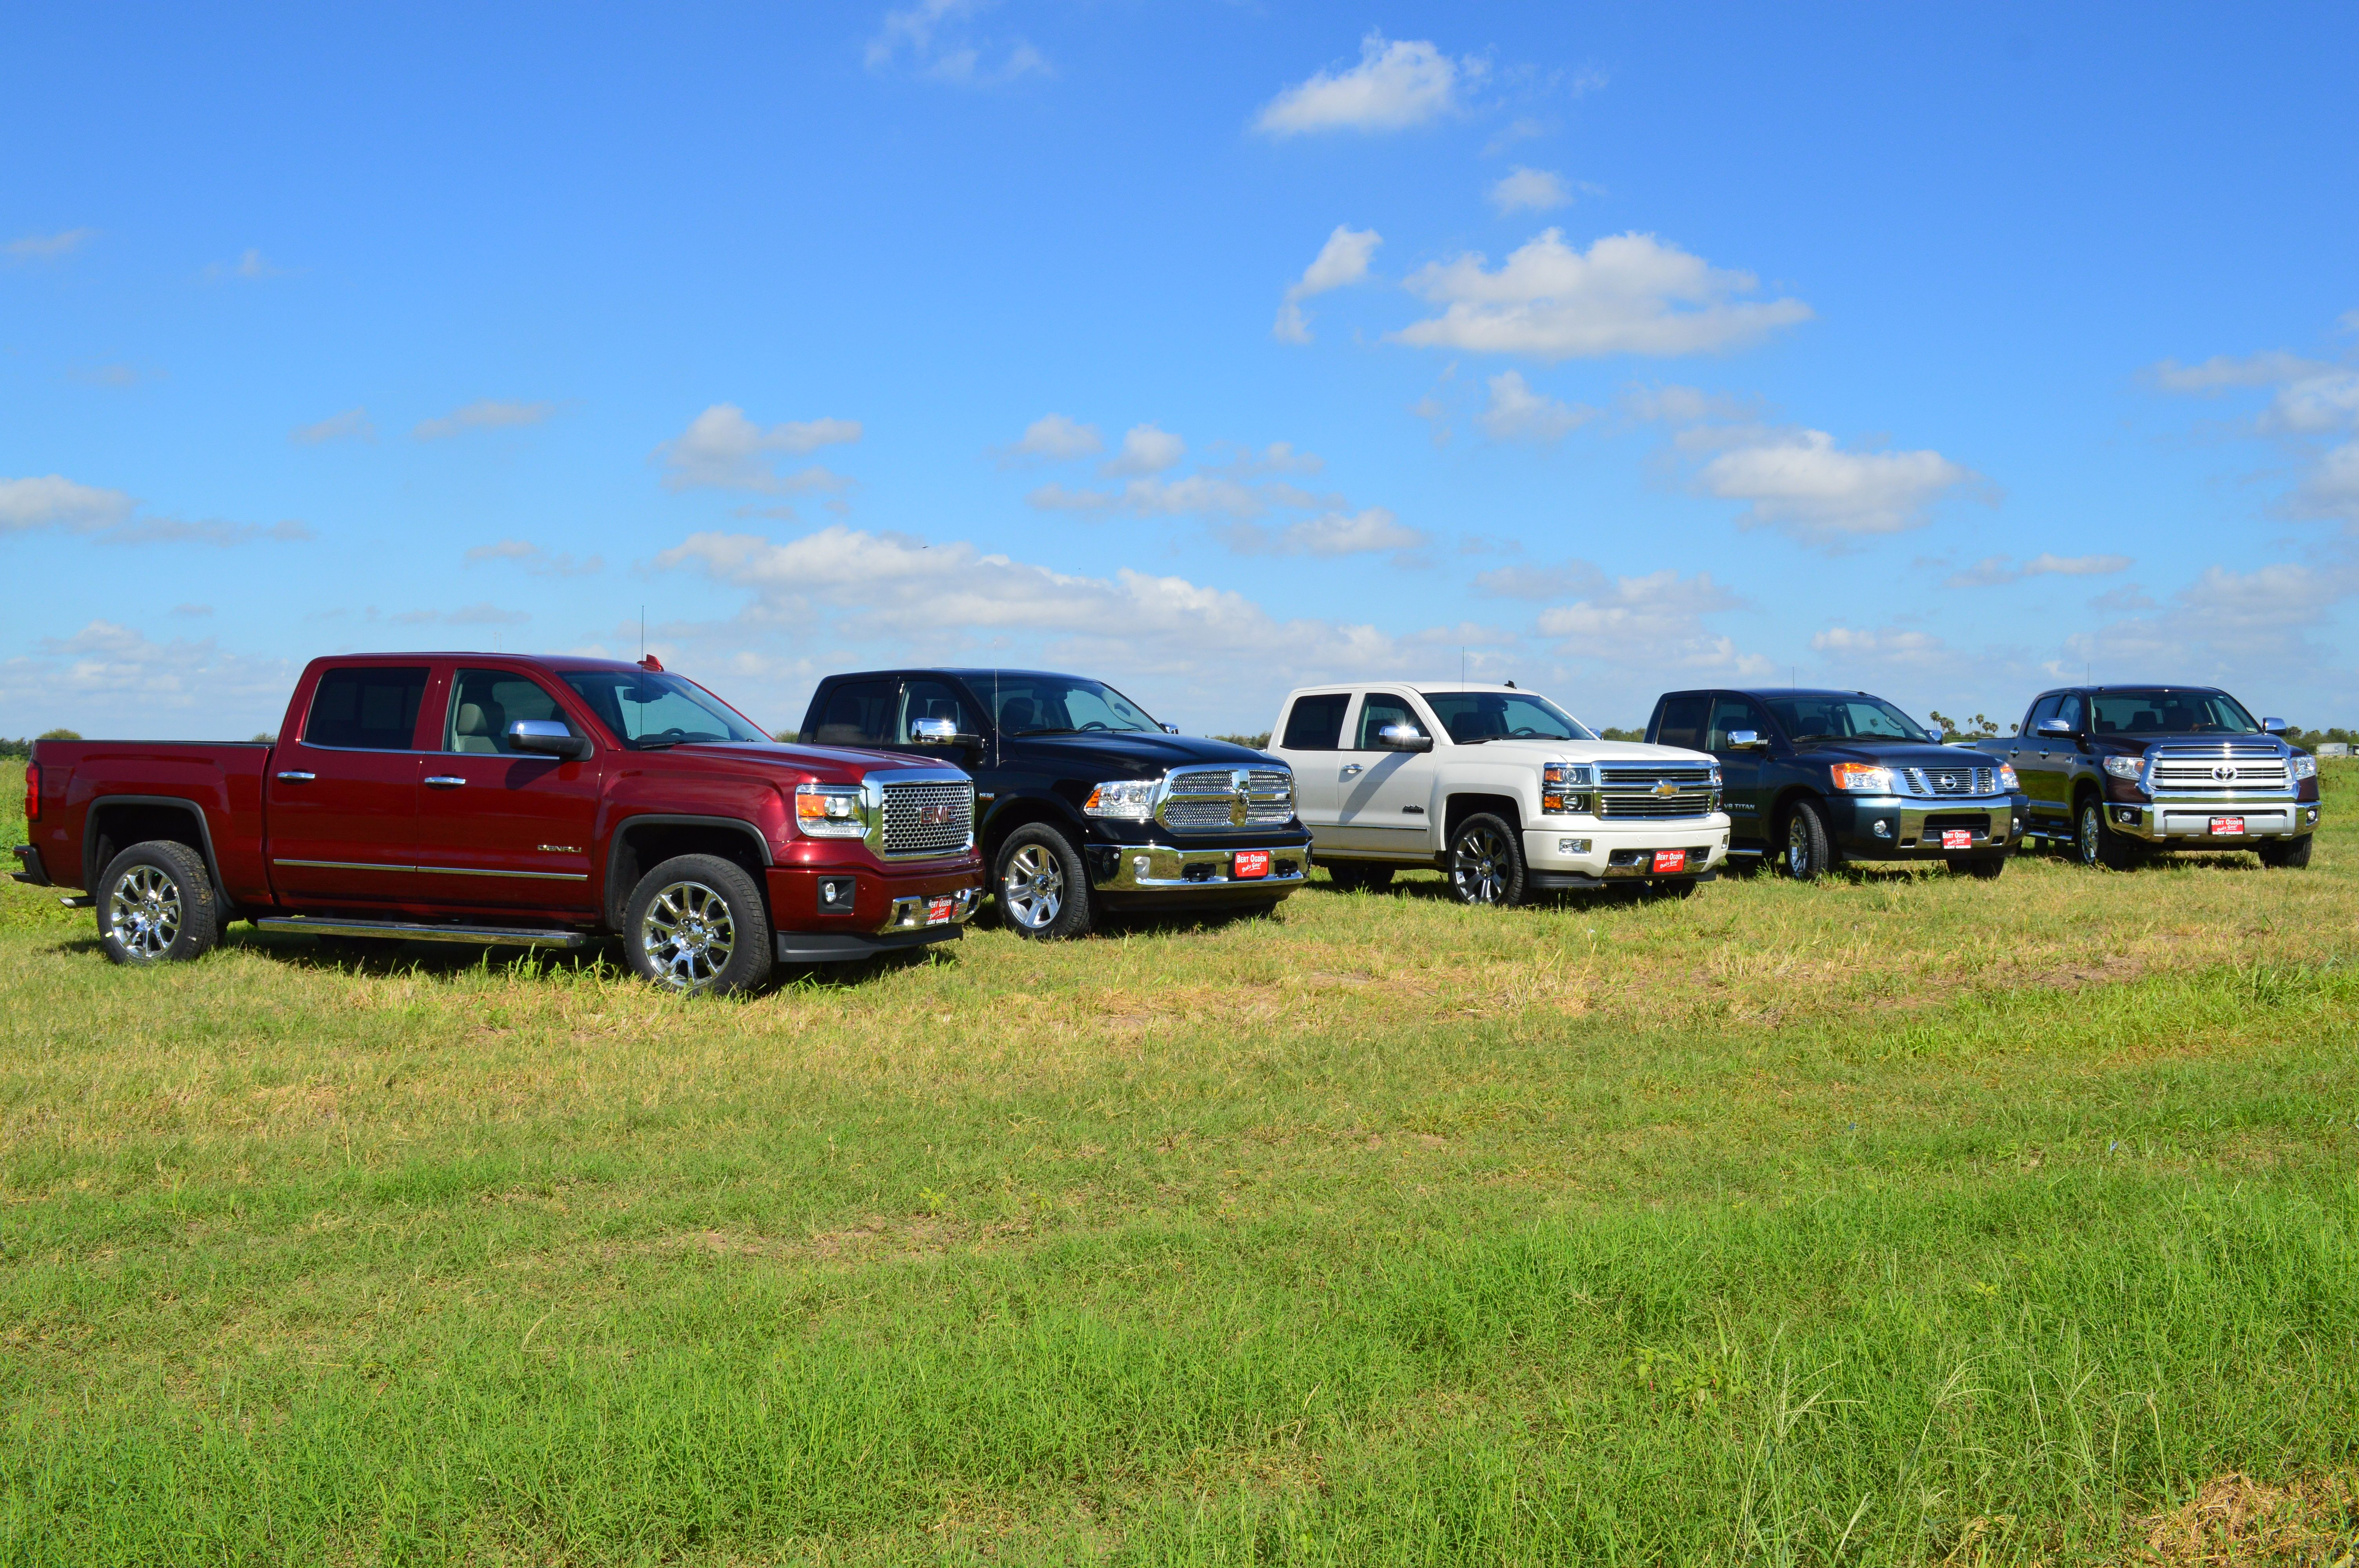 specs cab gmc nali photos oc modification ride mcallen original sierra crew